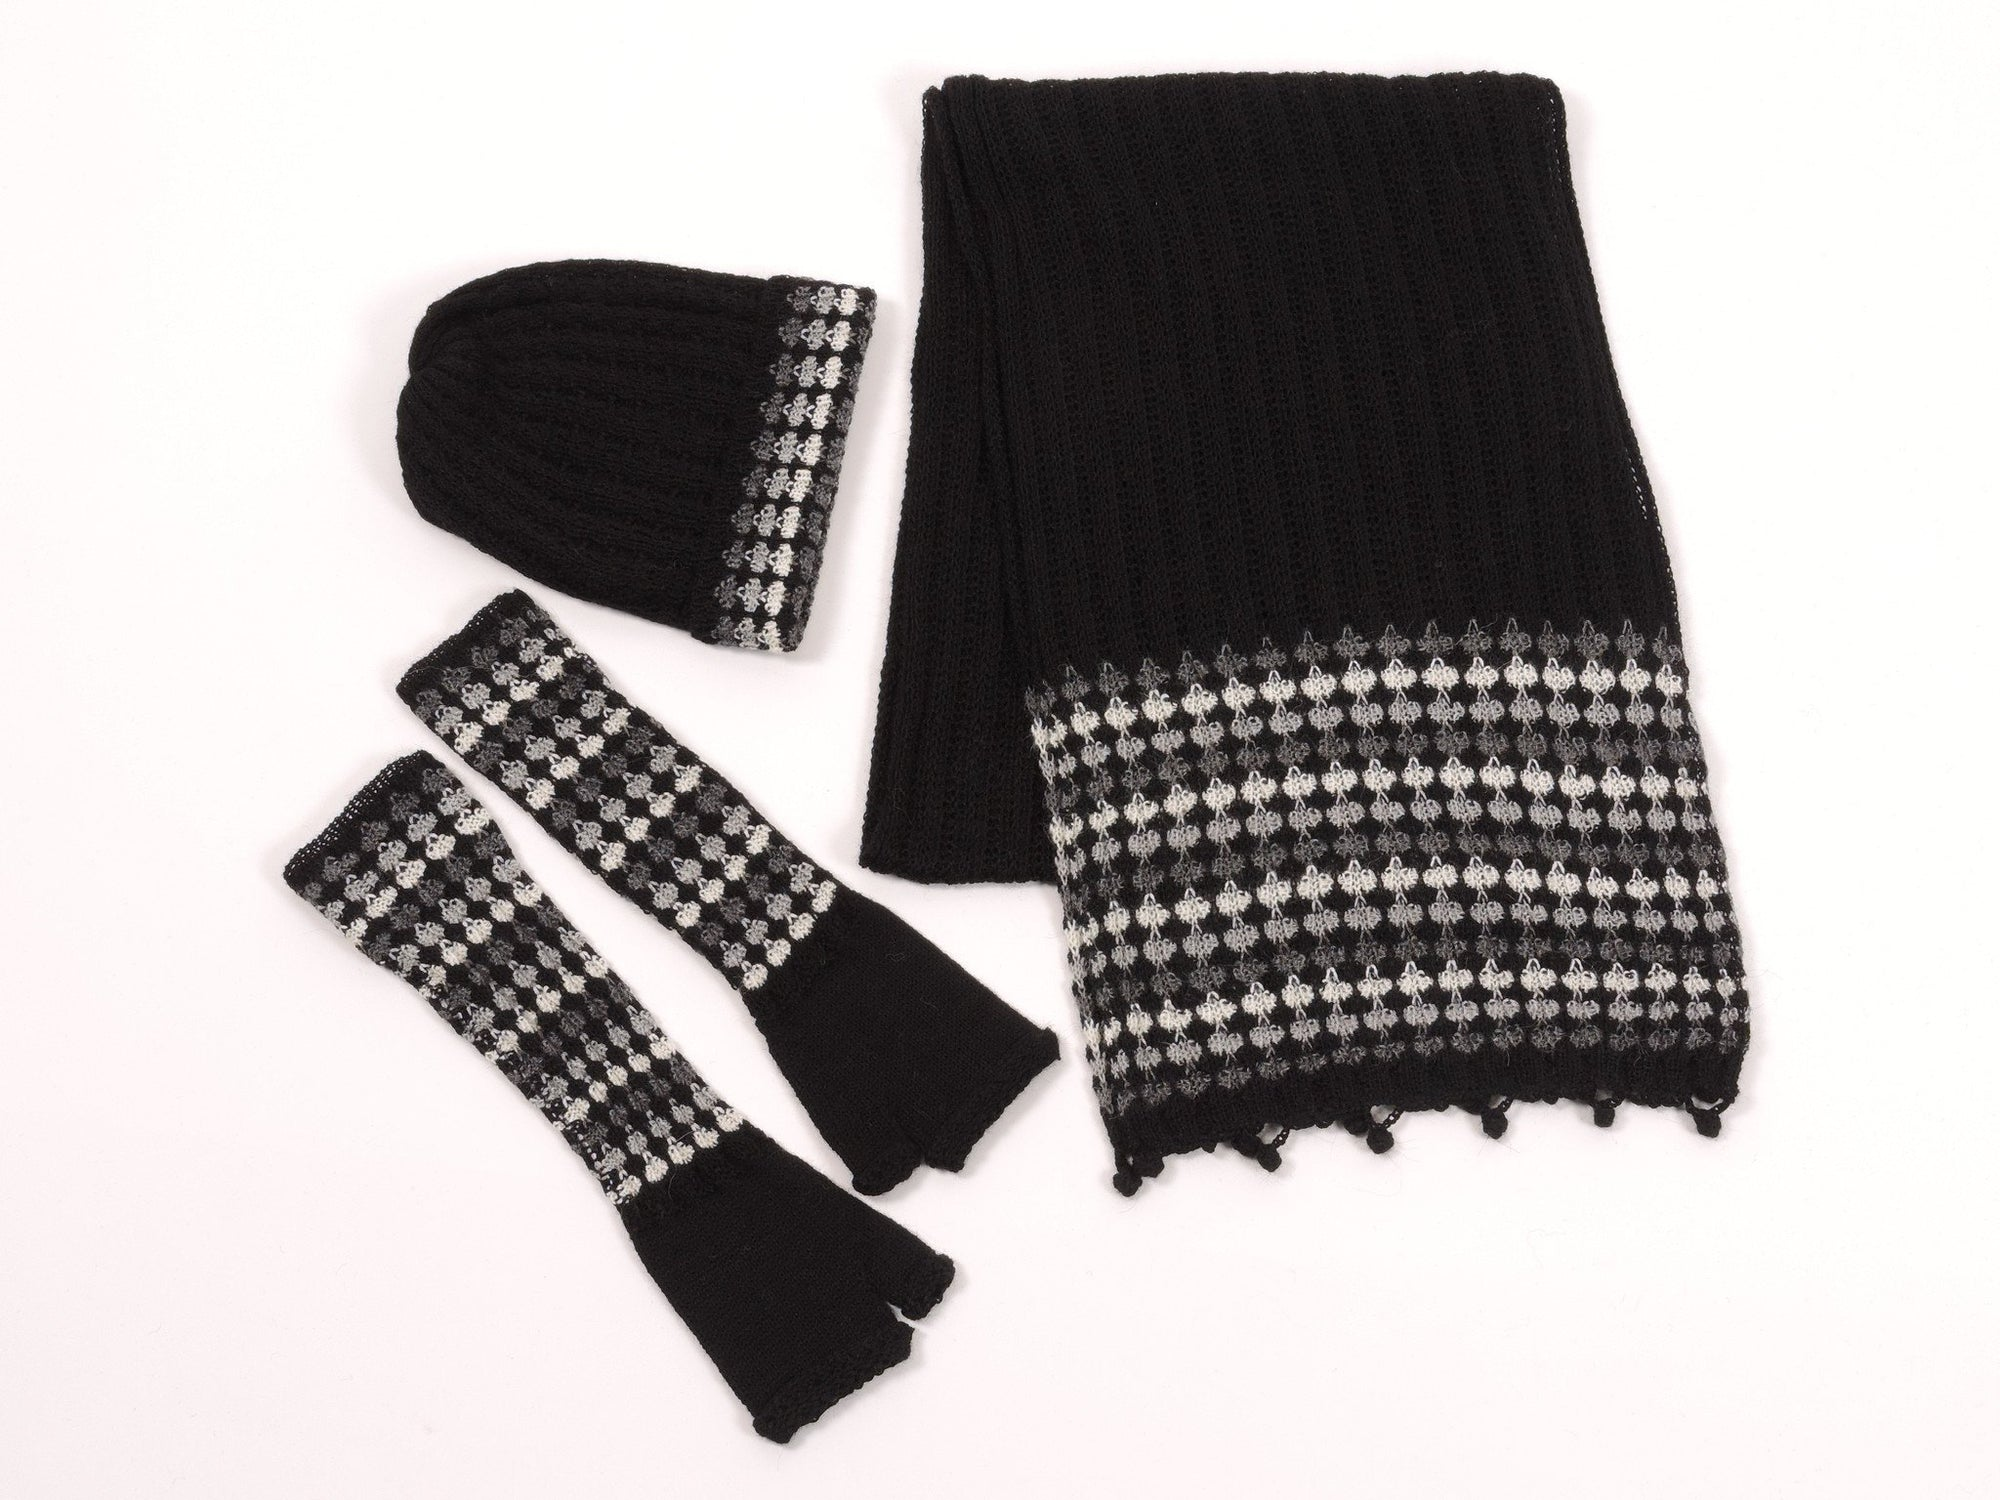 Baby Alpaca Knit Scarf Hat Gloves Set - Black, Grey & White - Qinti - The Peruvian Shop